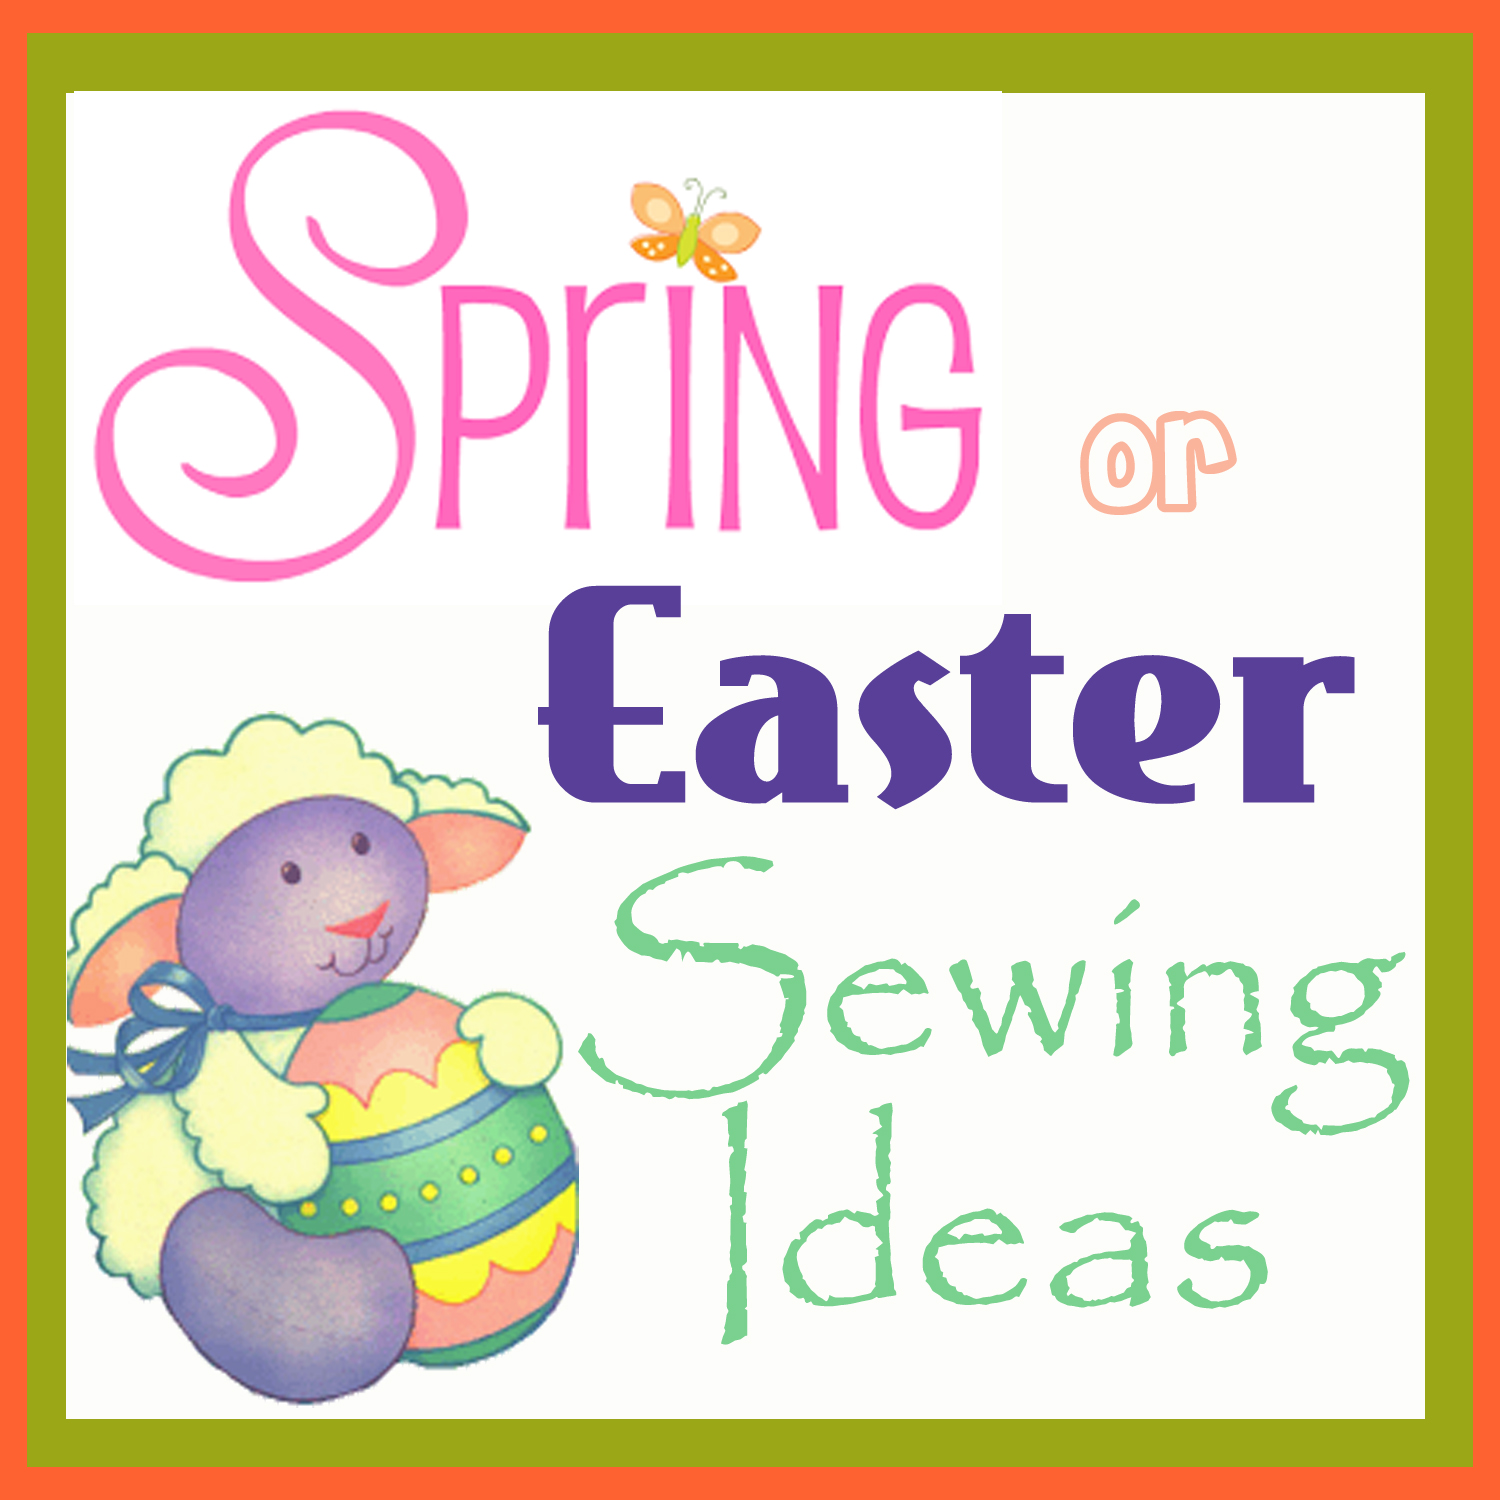 Cute Spring and Easter Sewing Ideas